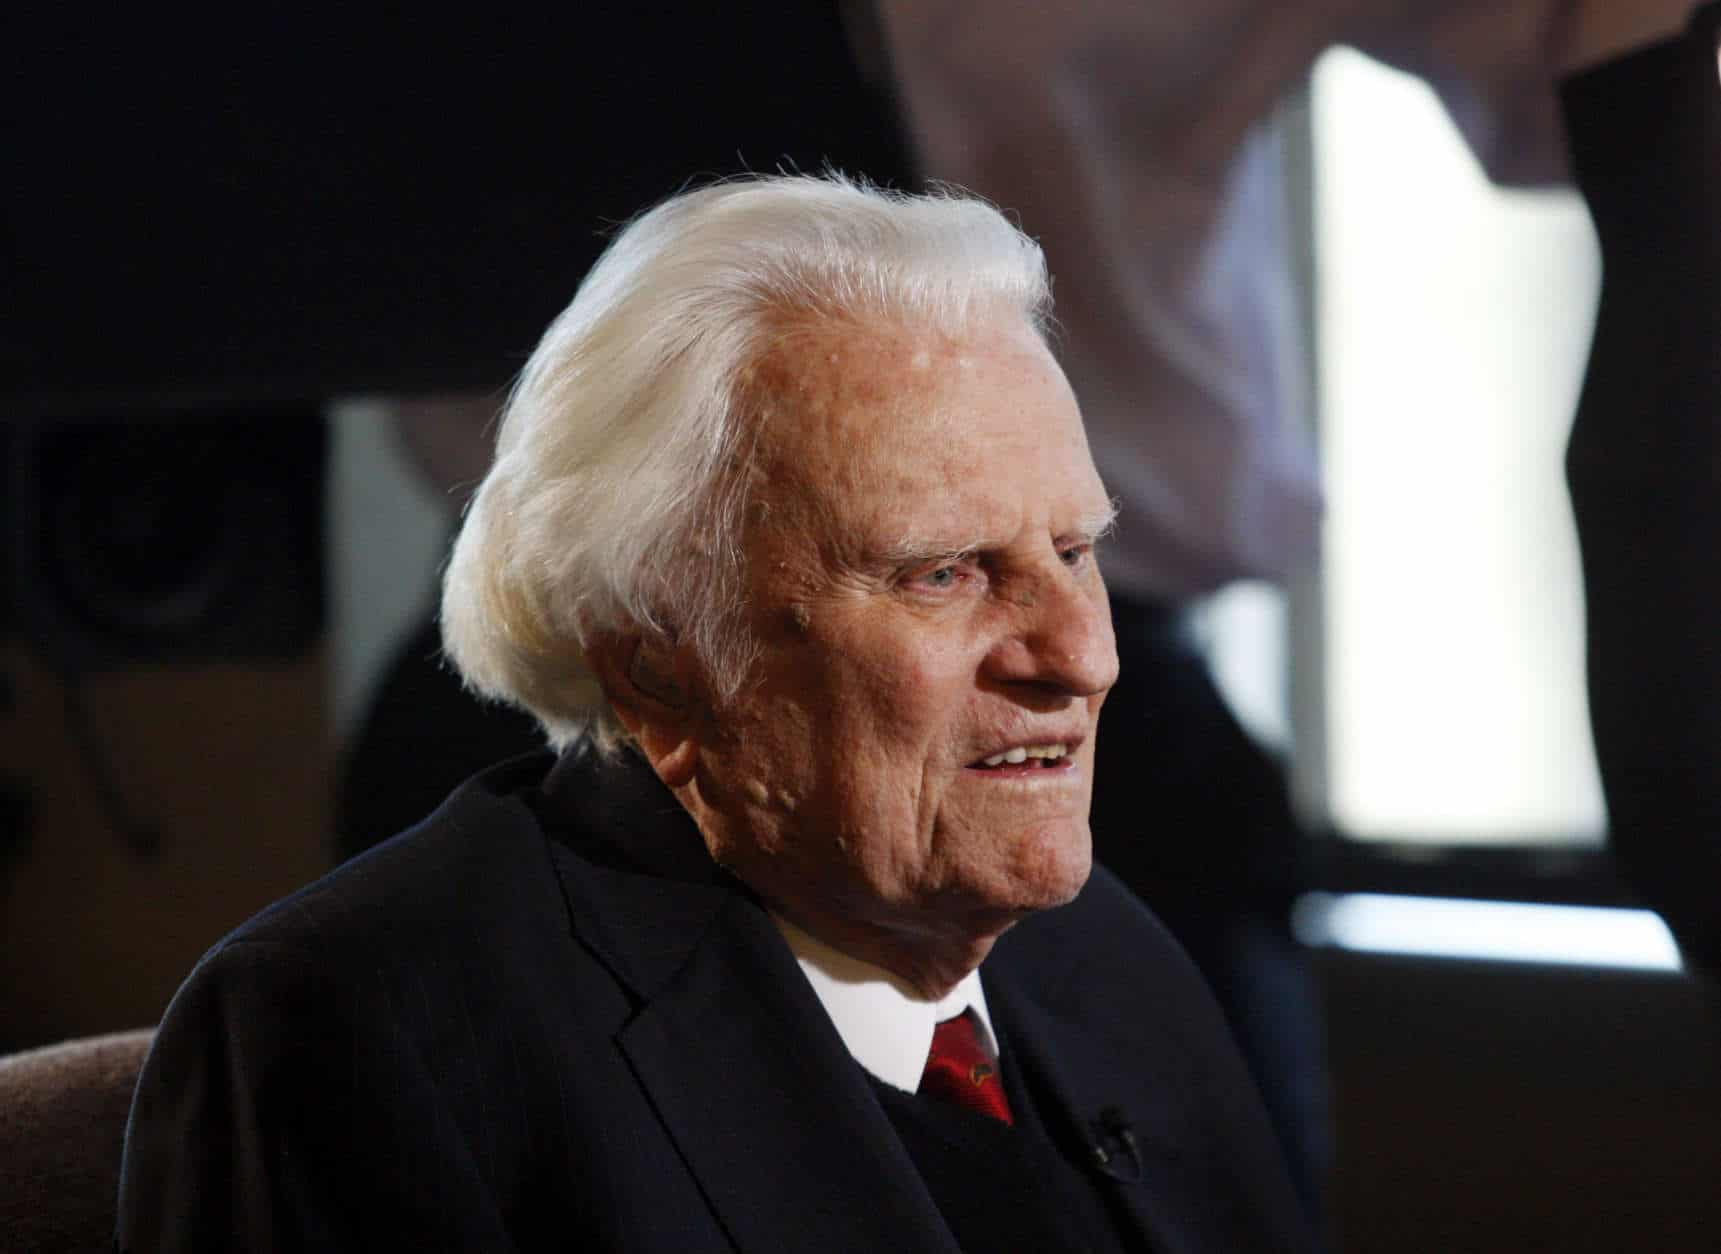 FILE- In this Dec. 20, 2010 file photo, evangelist Billy Graham, 92, is interviewed at the Billy Graham Evangelistic Association headquarters in Charlotte, N.C. A spokesman said Graham died at his home in North Carolina on Feb. 21, 2018. He was 99. Graham was treated for numerous ailments late in life. He was known for counseling many U.S. presidents. (AP Photo/Nell Redmond, File)